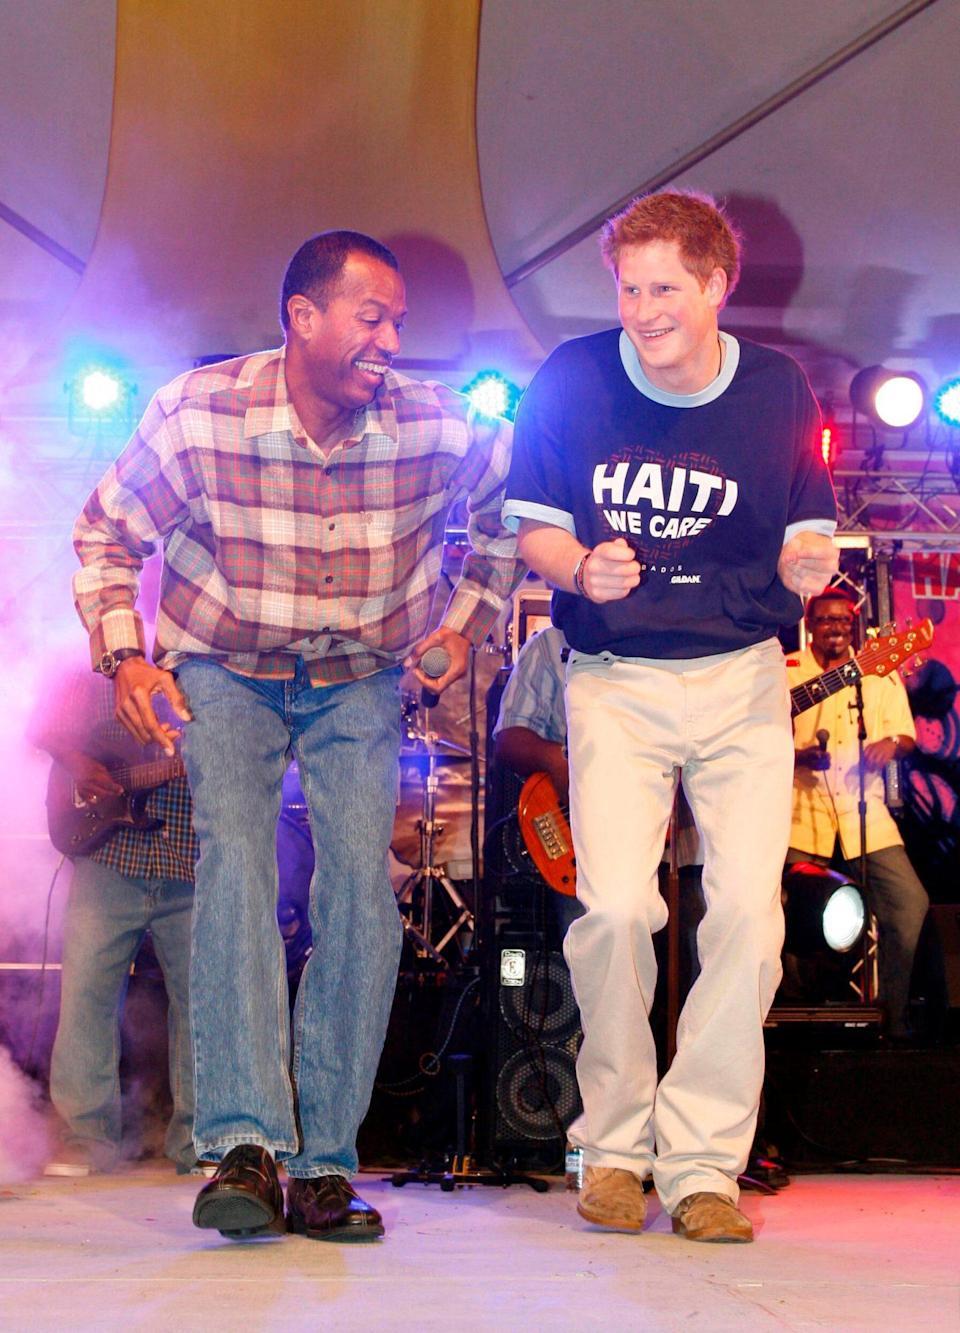 """<p>In 2010, a then-25-year-old Prince Harry wore his mission on his """"Haiti We Care"""" T-shirt at a fundraising concert for victims of a devastating earthquake. Gamely volunteering to show the crowd — including viewers on television in Barbados — his moves for a charitable donation, Harry eventually took to the stage to try his hand (and hips!) at a calypso dance.</p>"""